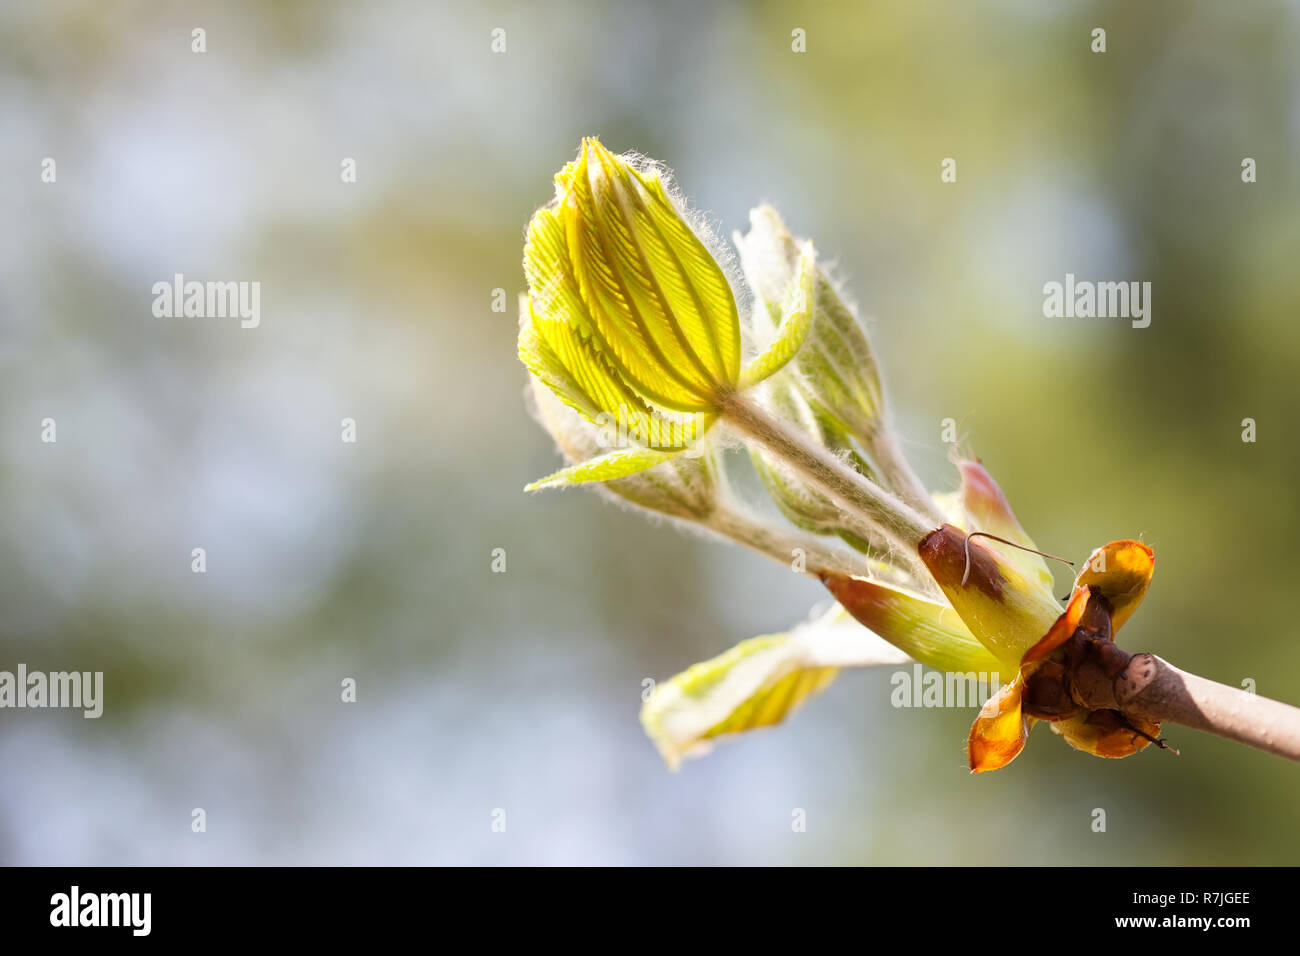 Horse chestnut bud bursting into leaves. Castania tree branch macro view. Shallow depth of field, soft focus background - Stock Image